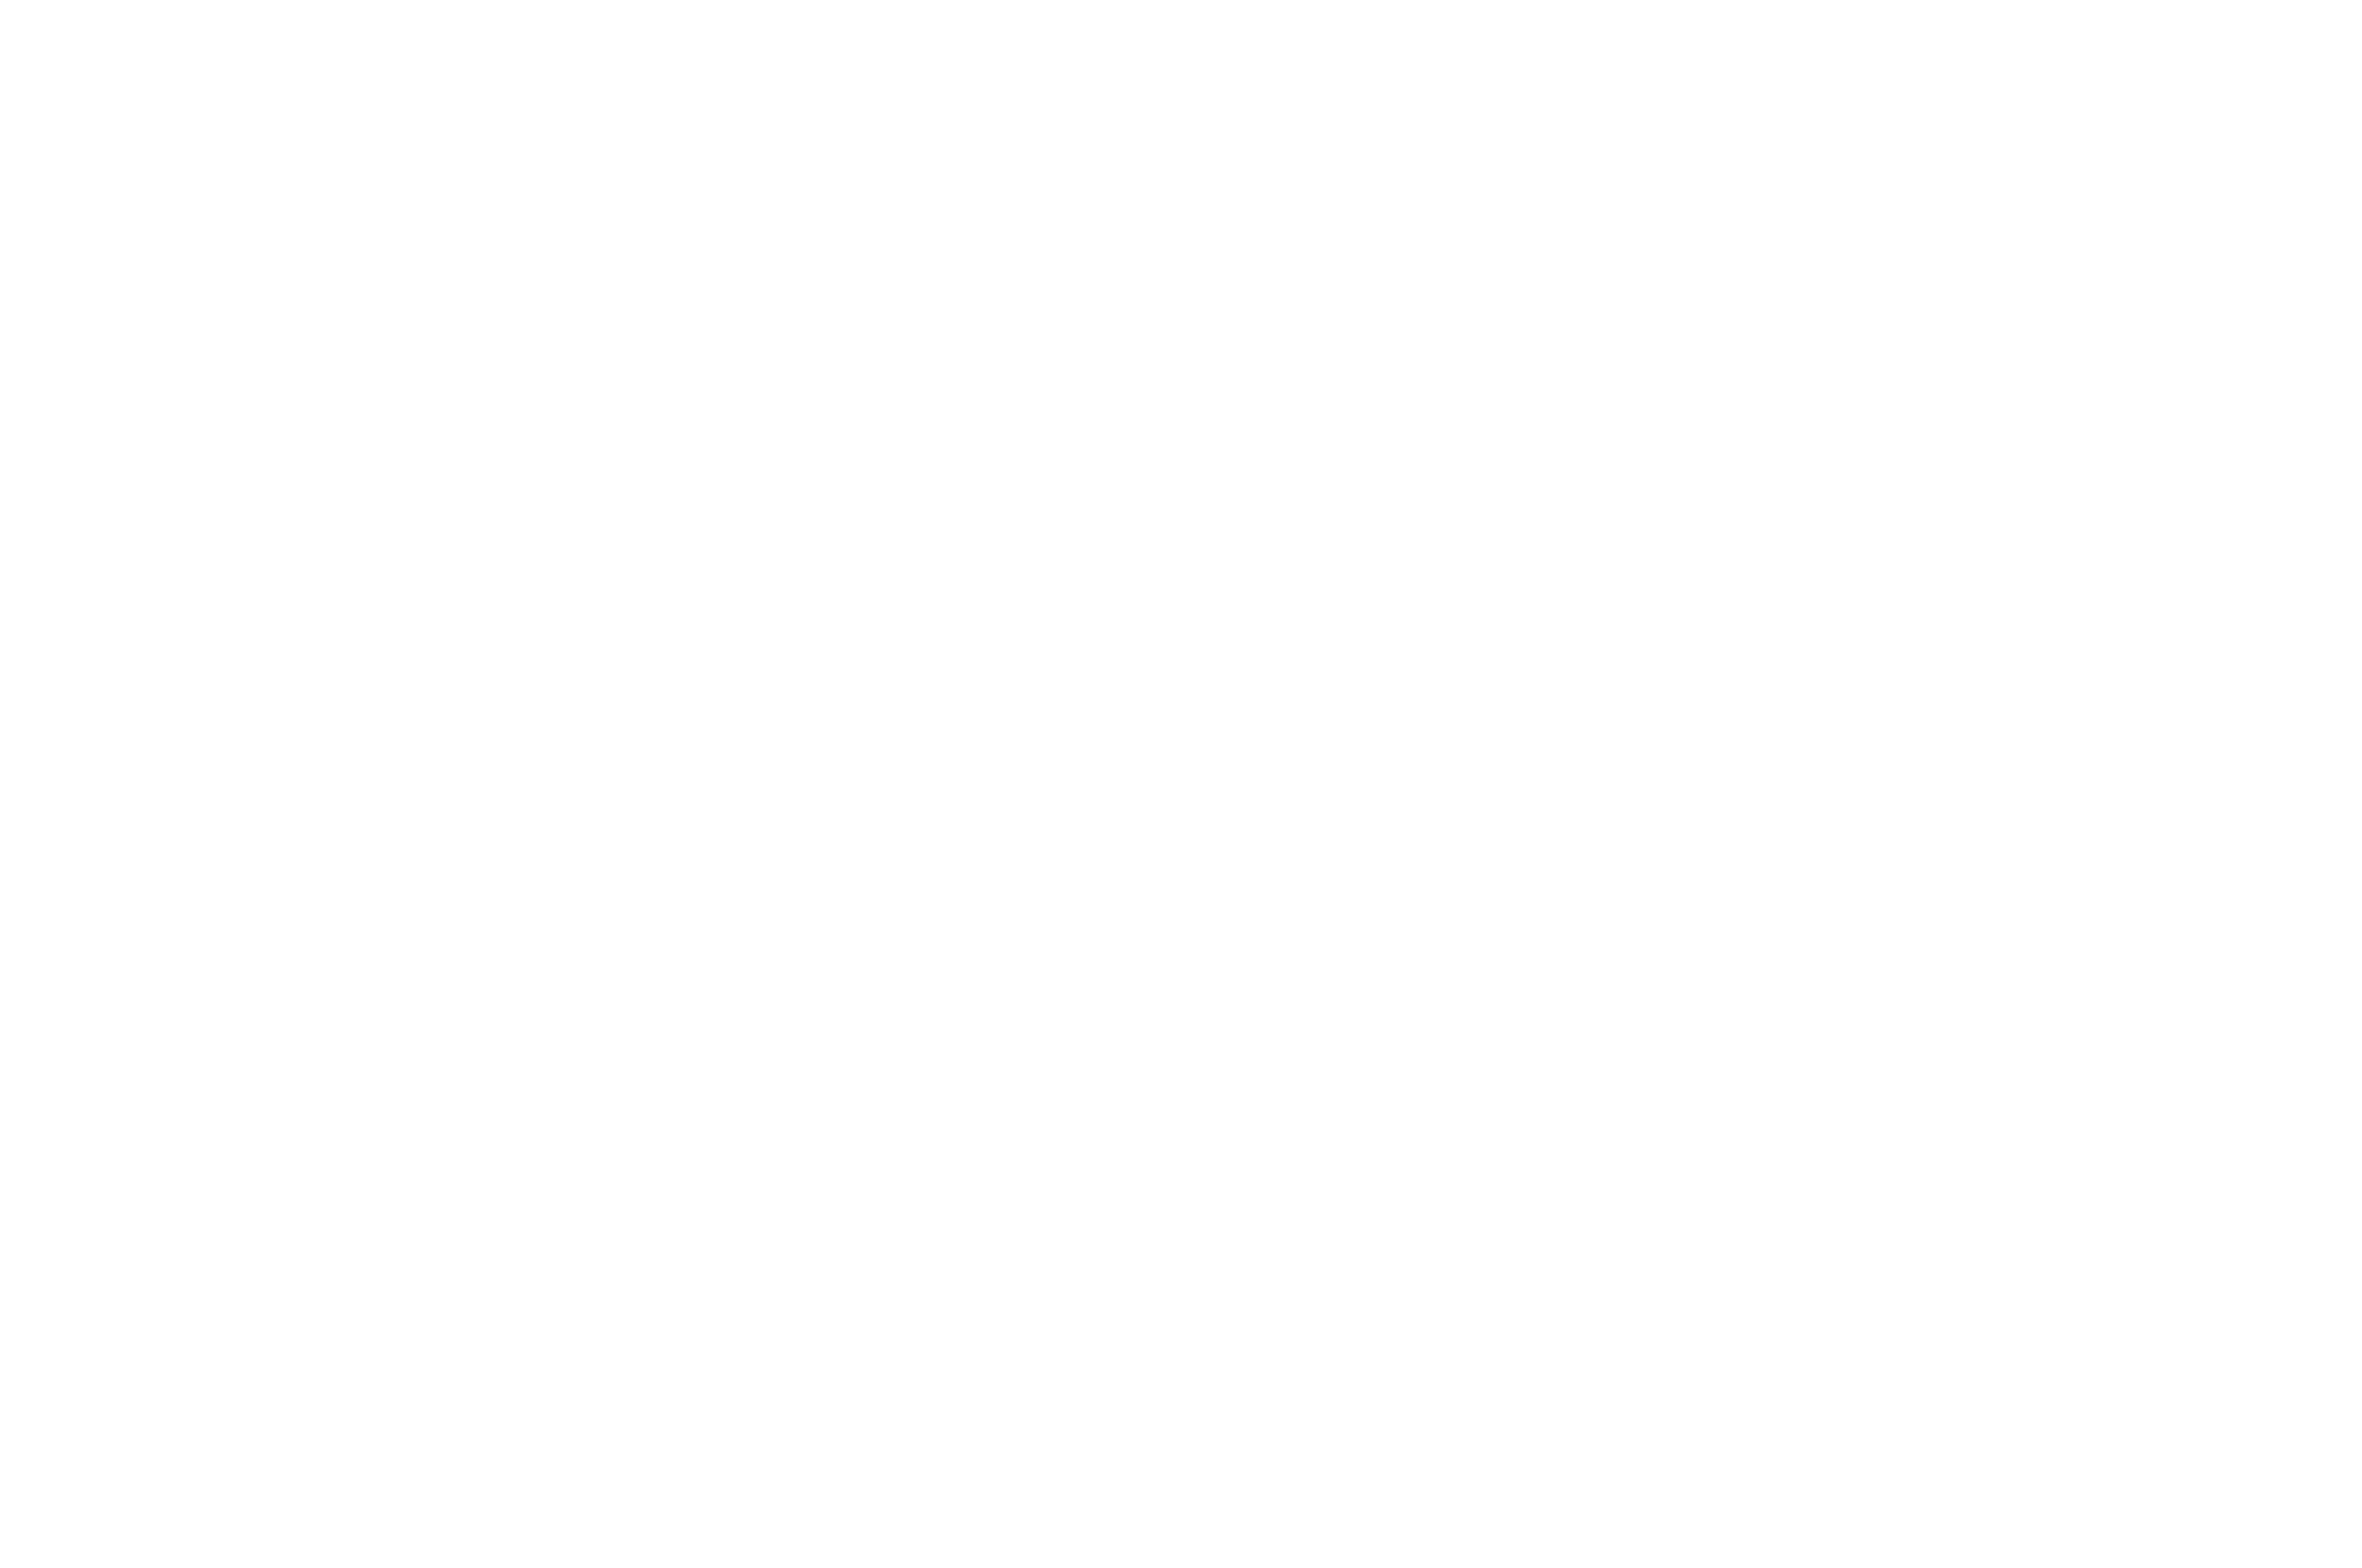 0_officialselection-americanconservationfilmfestival-2018.png